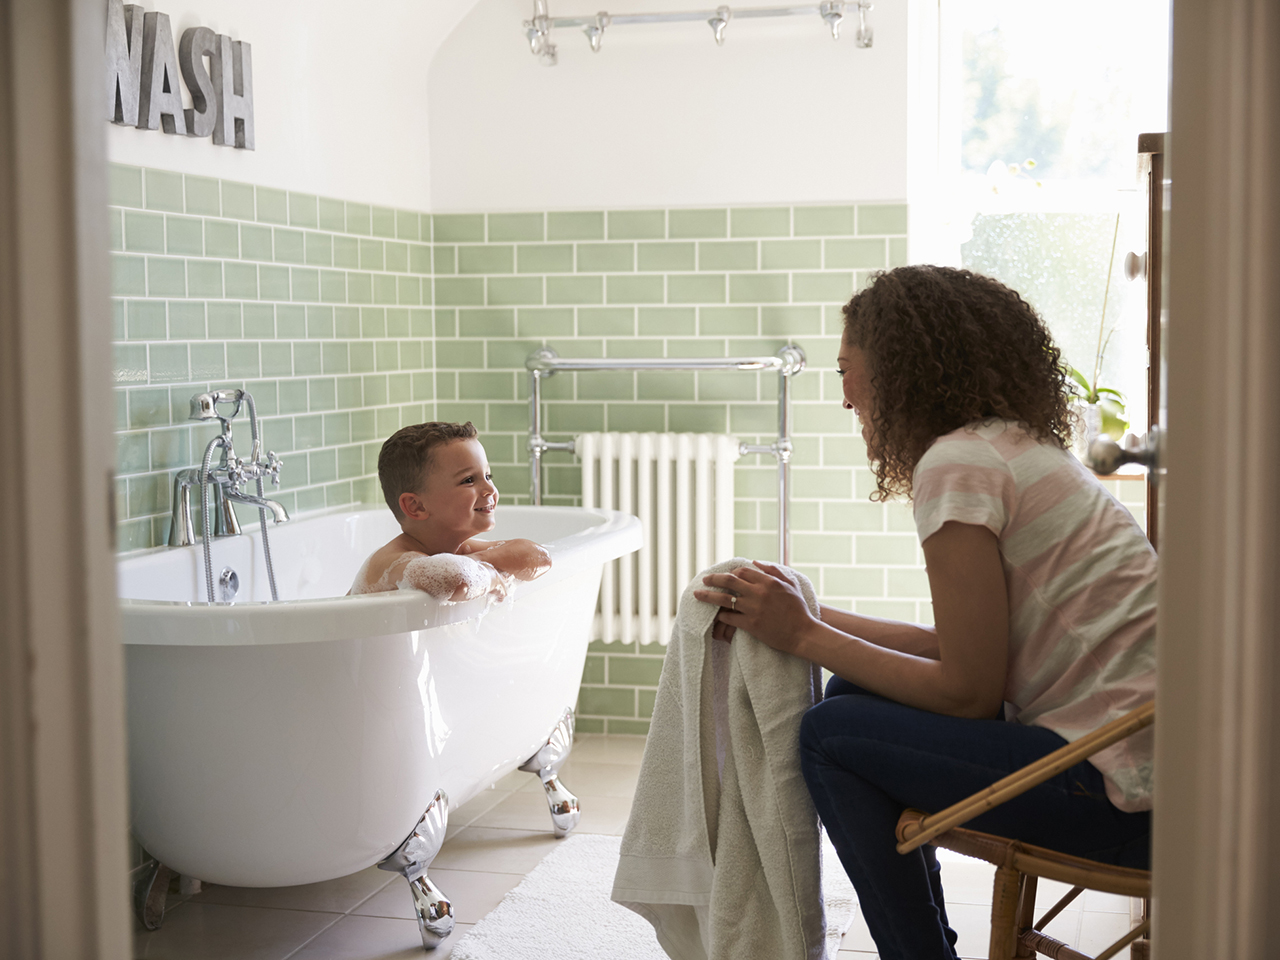 Son in the bath tub for bath time with his mom sitting down with a towel